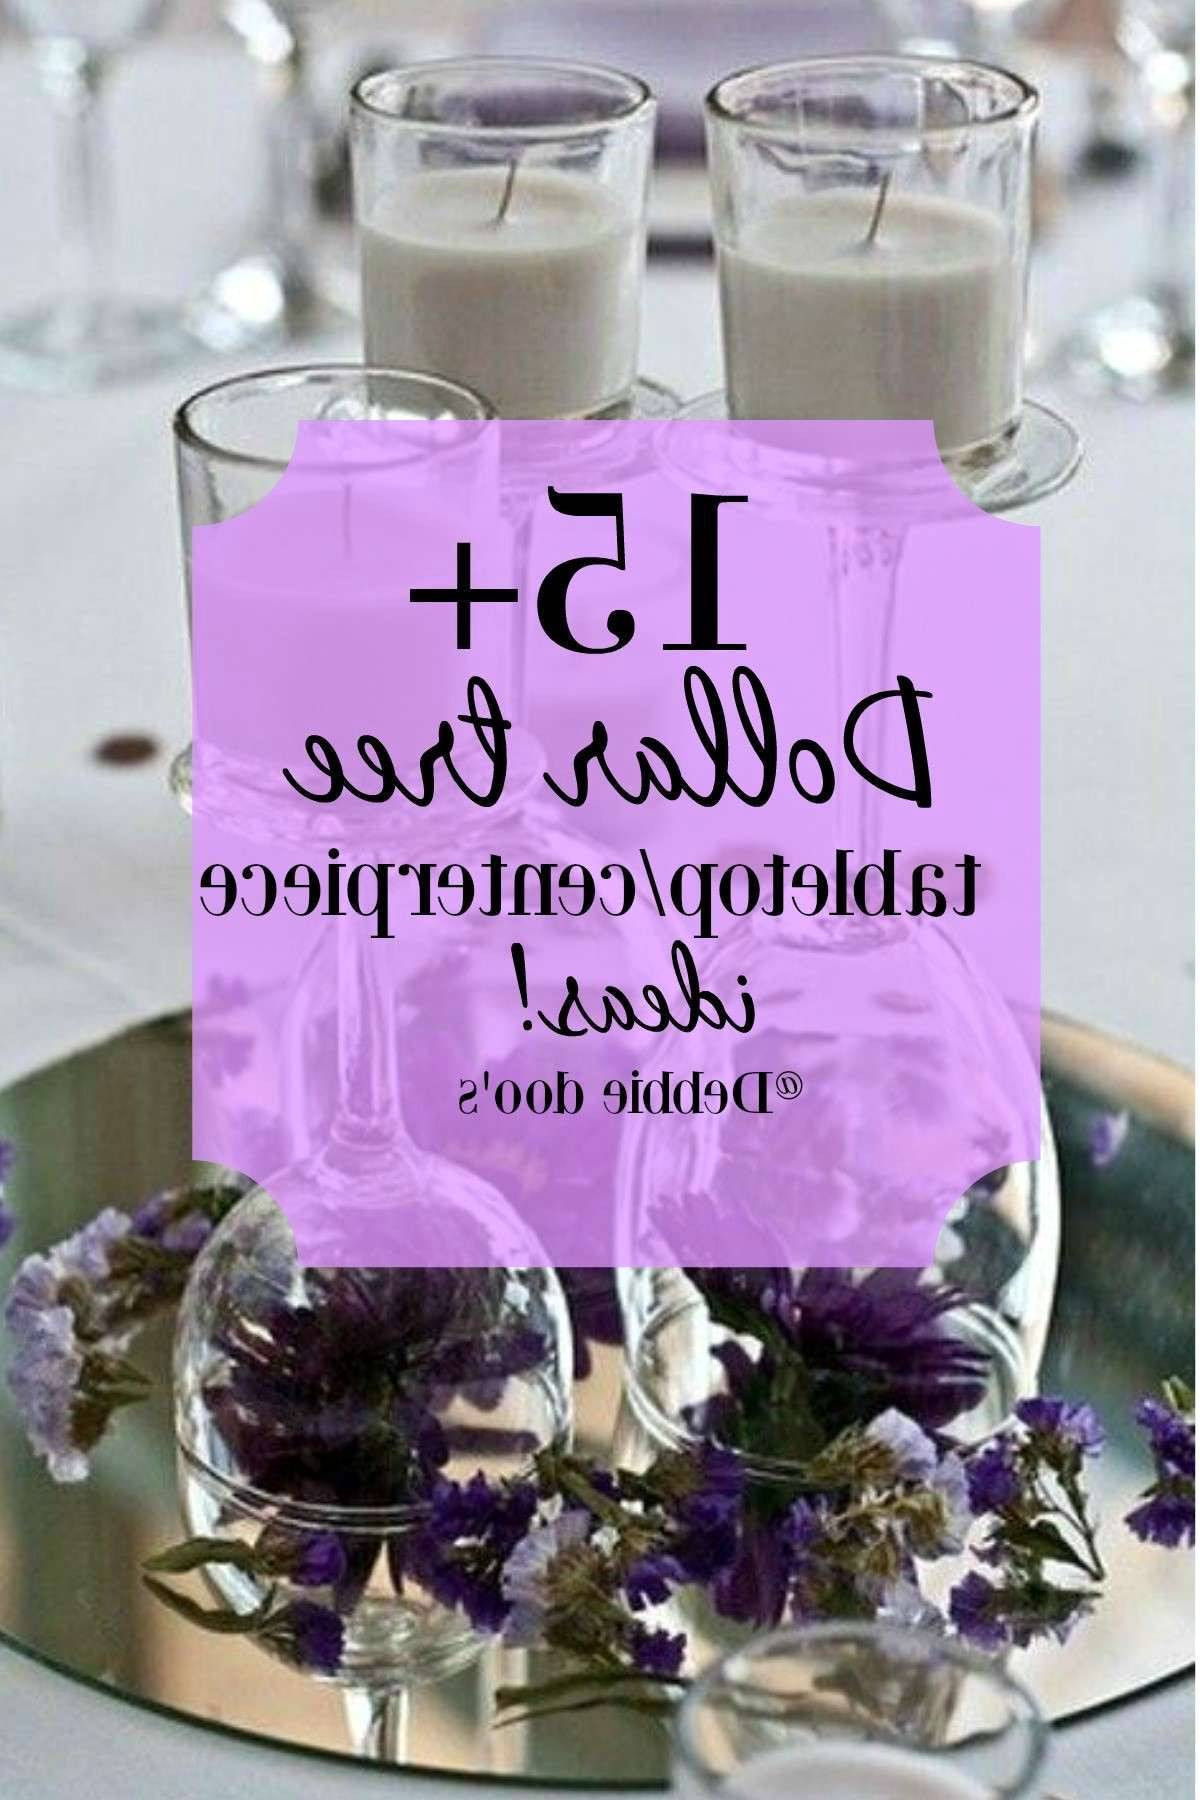 centerpieces vases for sale of purple wedding decorations for sale new dollar tree wedding in purple wedding decorations for sale new dollar tree wedding decorations awesome h vases dollar vase i